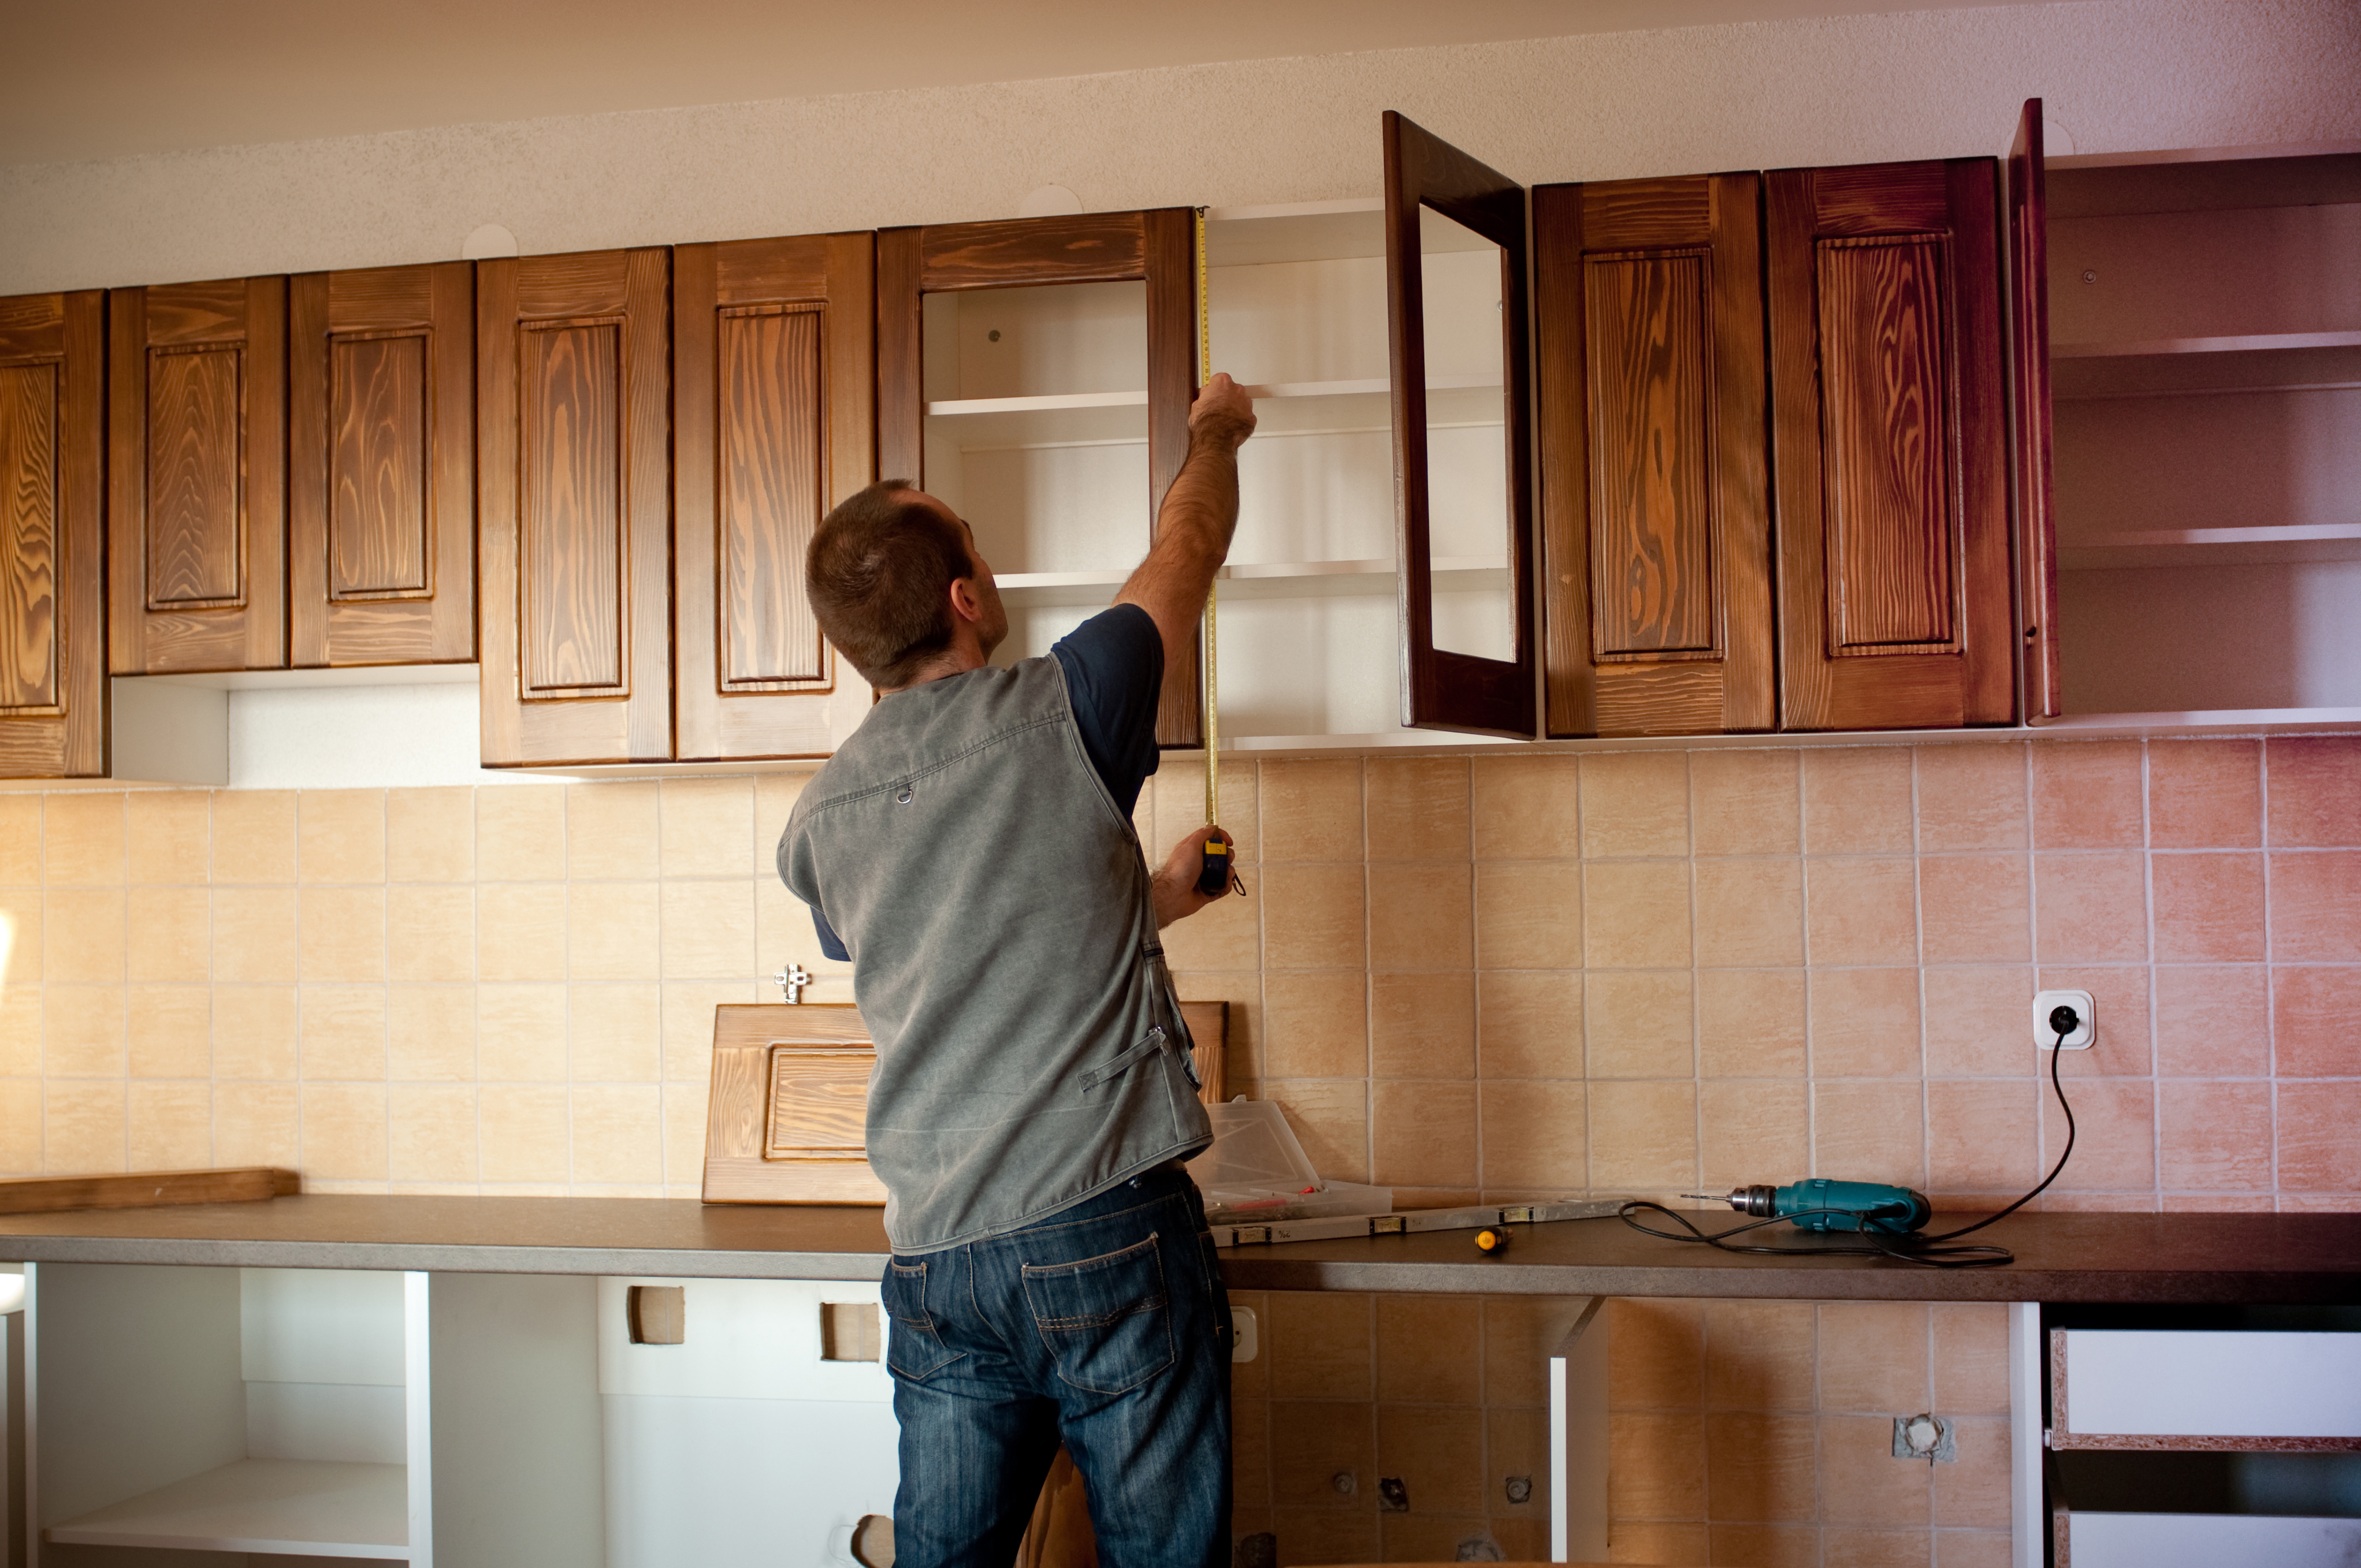 Home Remodeling Chicago Remodeling Contractors Chicago - Home remodeling chicago